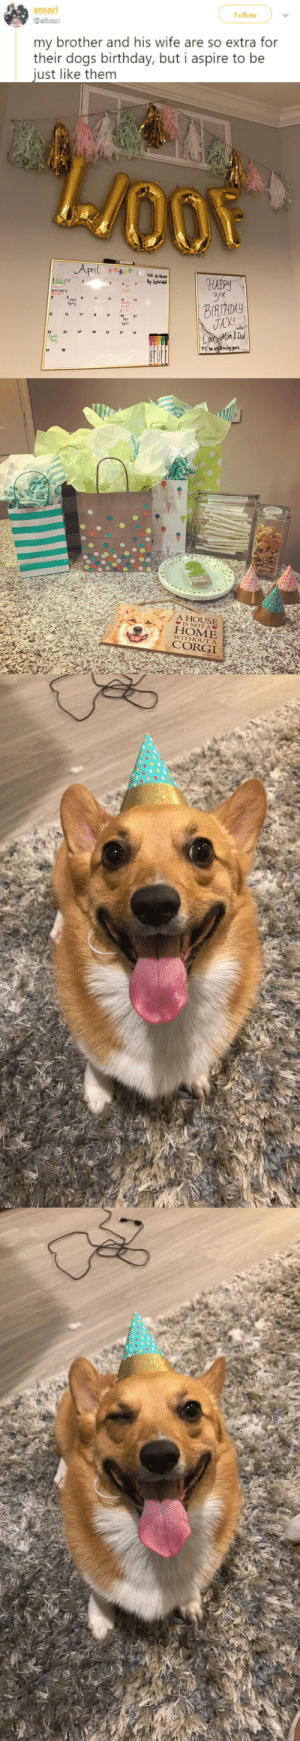 dailytweets: IS NO ONE PAYING ATTENTION TO THE FACT THAT THE FLOOF IS WINKING.  WINKING. HE IS AN ANGEL. [x] : amar  Follow  @atlosci  my brother and his wife are so extra for  their dogs birthday, but i aspire to be  just like them   DAY  11's 12r  Tax's  Party  BIRTHDY  br. Apt  1 30  1b 17 9  리  PAY  DAY!  22 2s 26 27  Earth  Dey  ZI  30   A HOUSE  HOME  CORGI  WITHOUT A dailytweets: IS NO ONE PAYING ATTENTION TO THE FACT THAT THE FLOOF IS WINKING.  WINKING. HE IS AN ANGEL. [x]